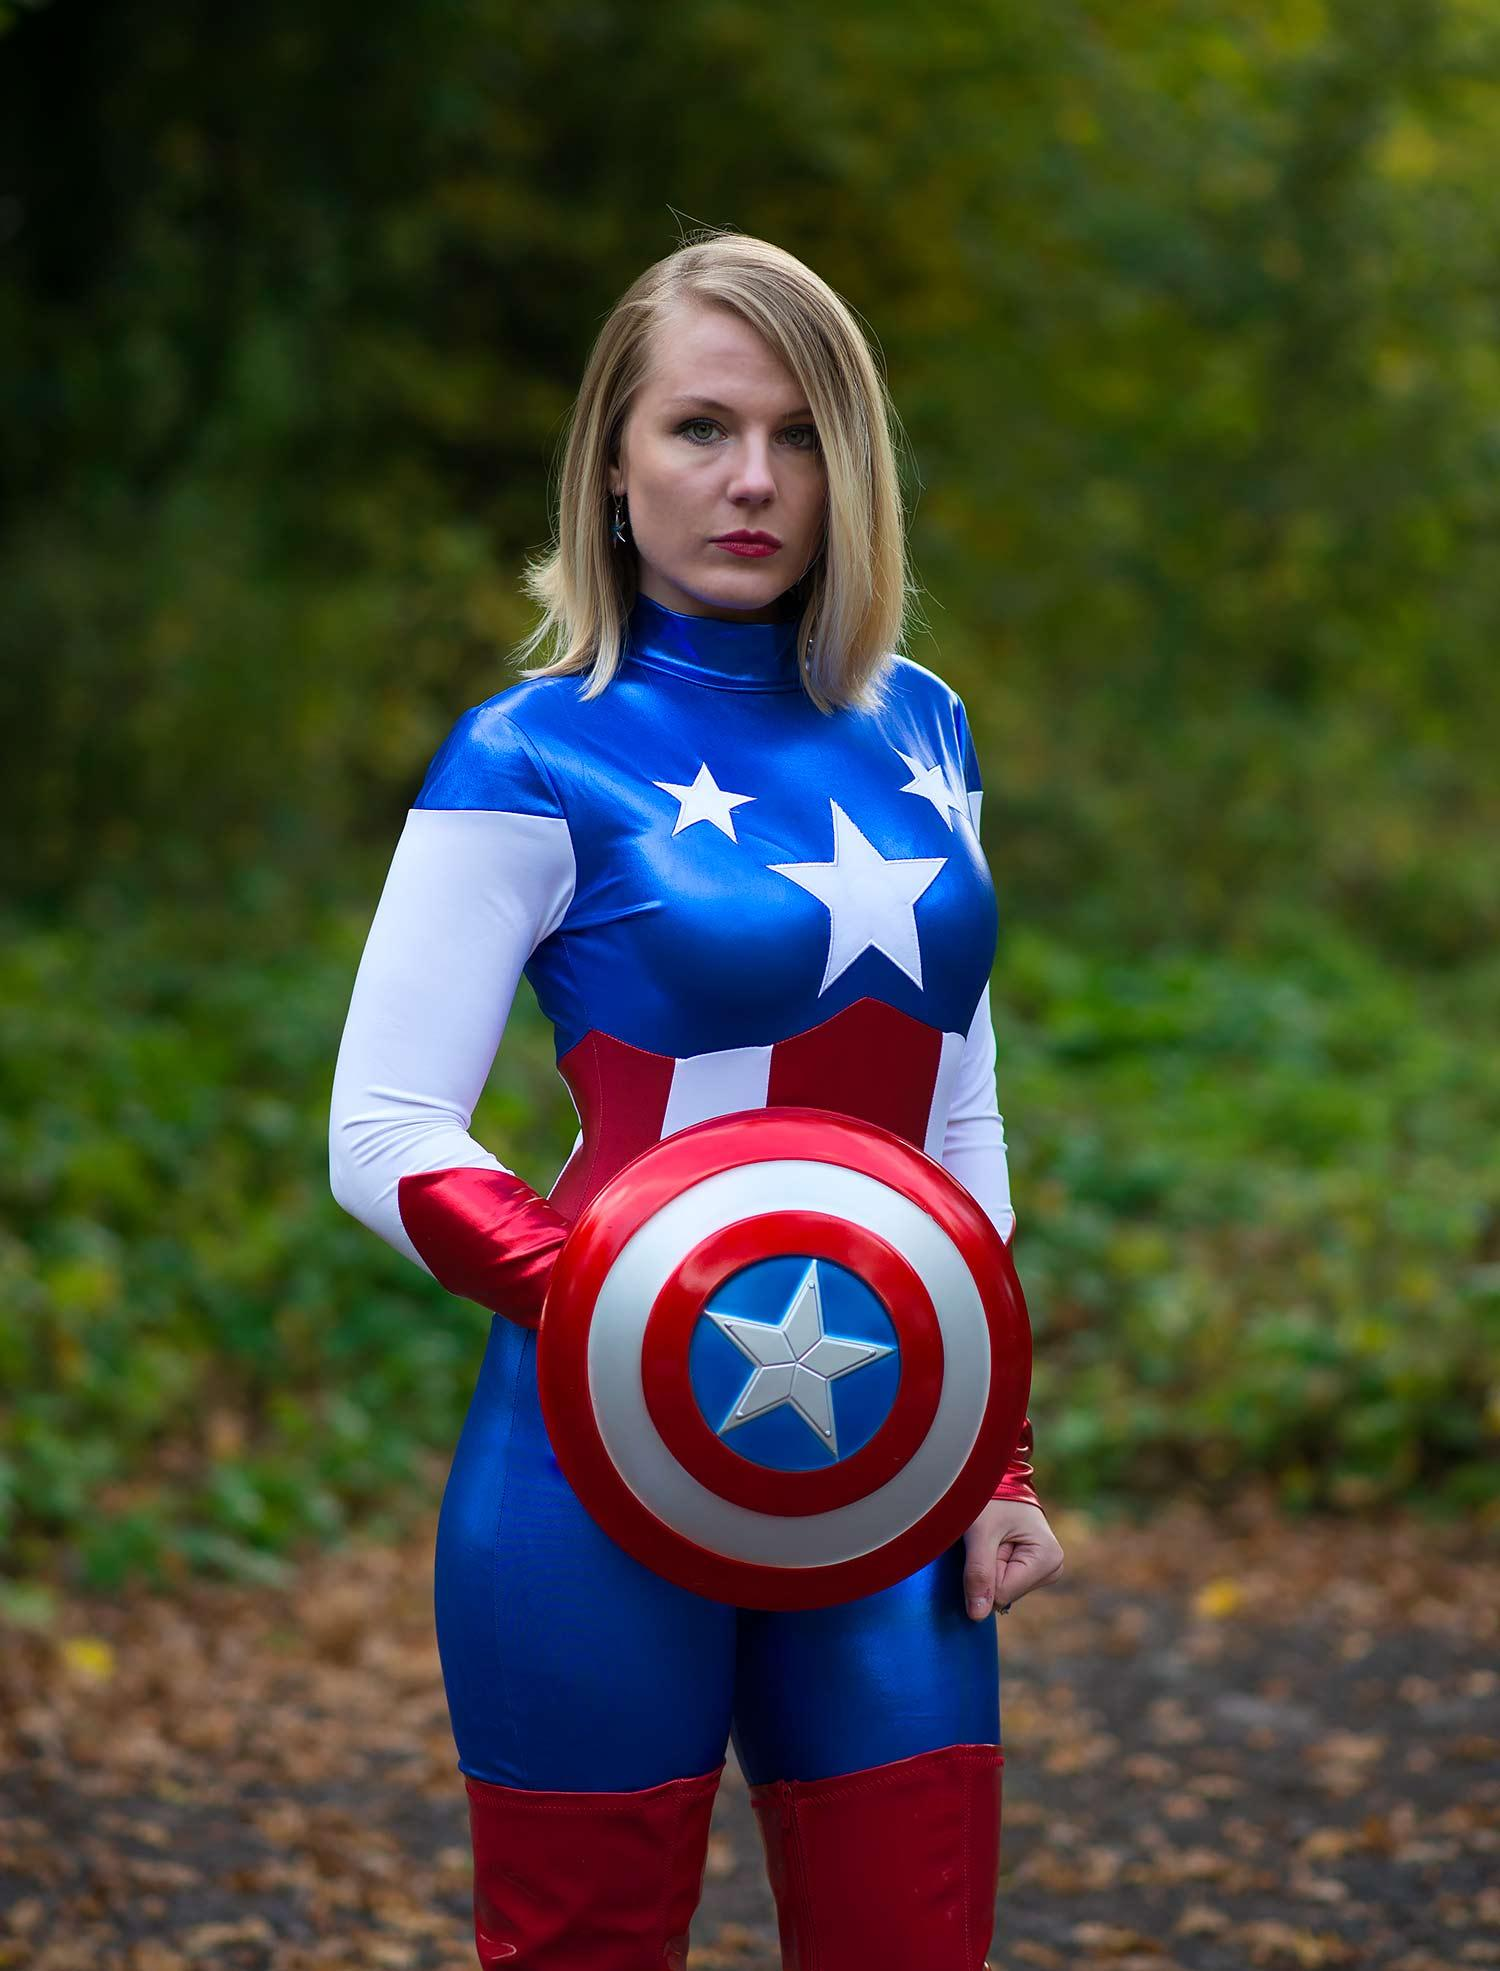 lorna-burford-miss-captain-america-costume-girl-5